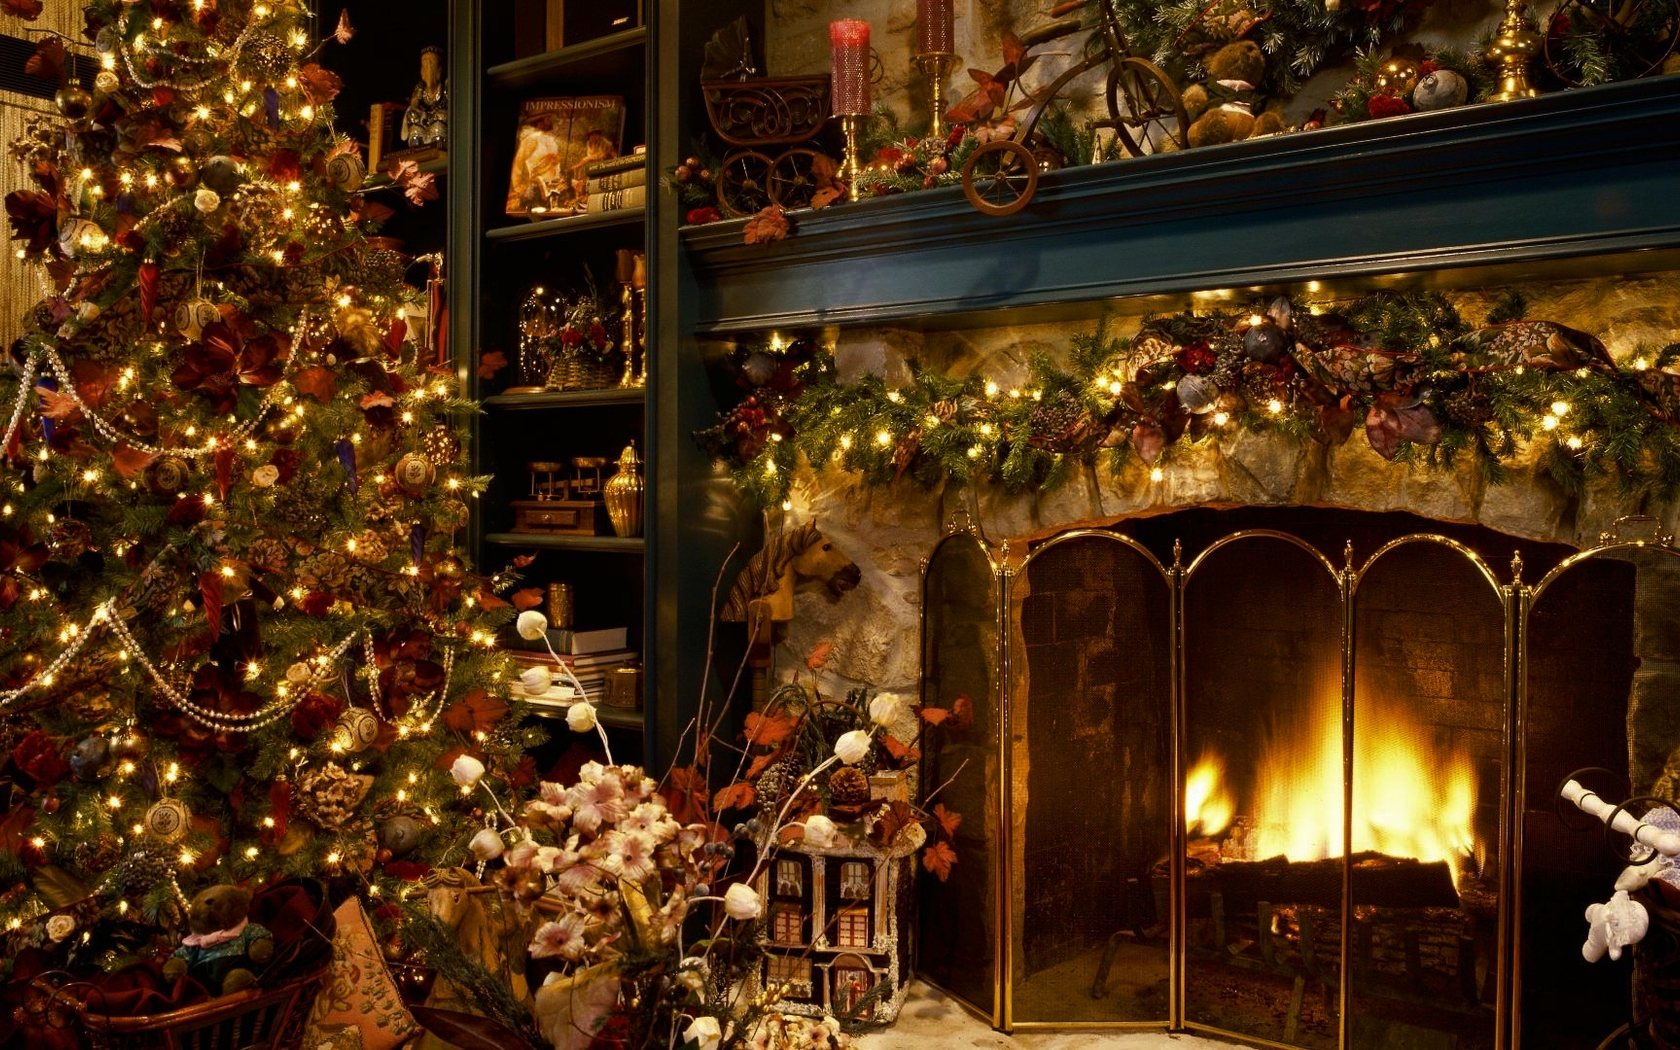 Christmas Fireplace Wallpapers Christmas Fireplace Wallpapers Was 1680x1050